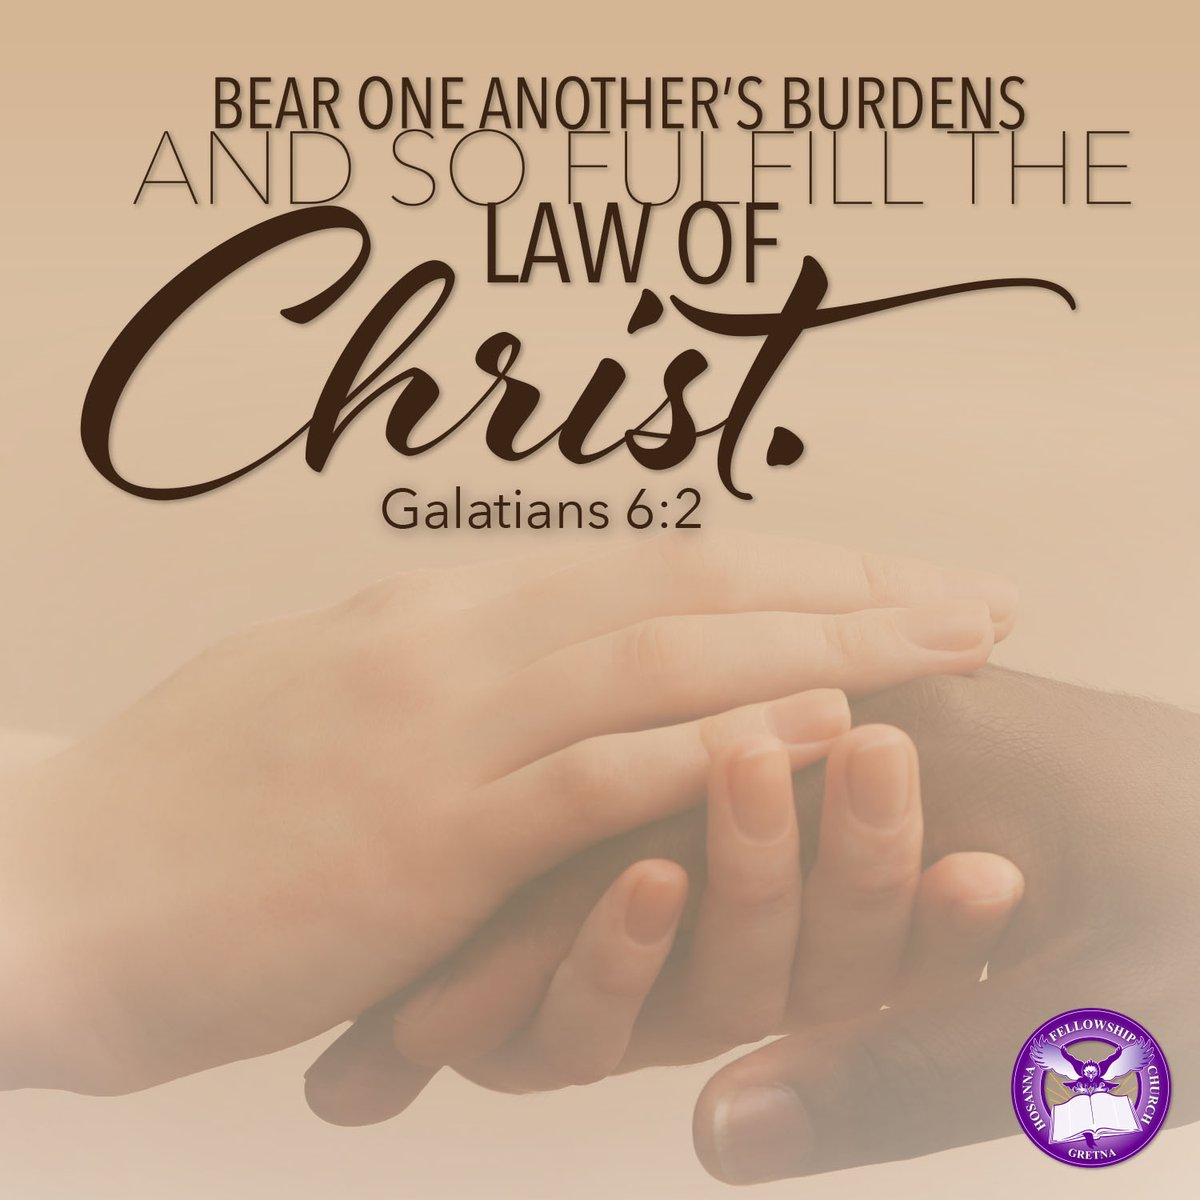 Help each other out when you're down. By doing so, you're fulfilling the law of Christ. #LoveThyNeighbor #hfcgretna<br>http://pic.twitter.com/BBb0m9TDoH